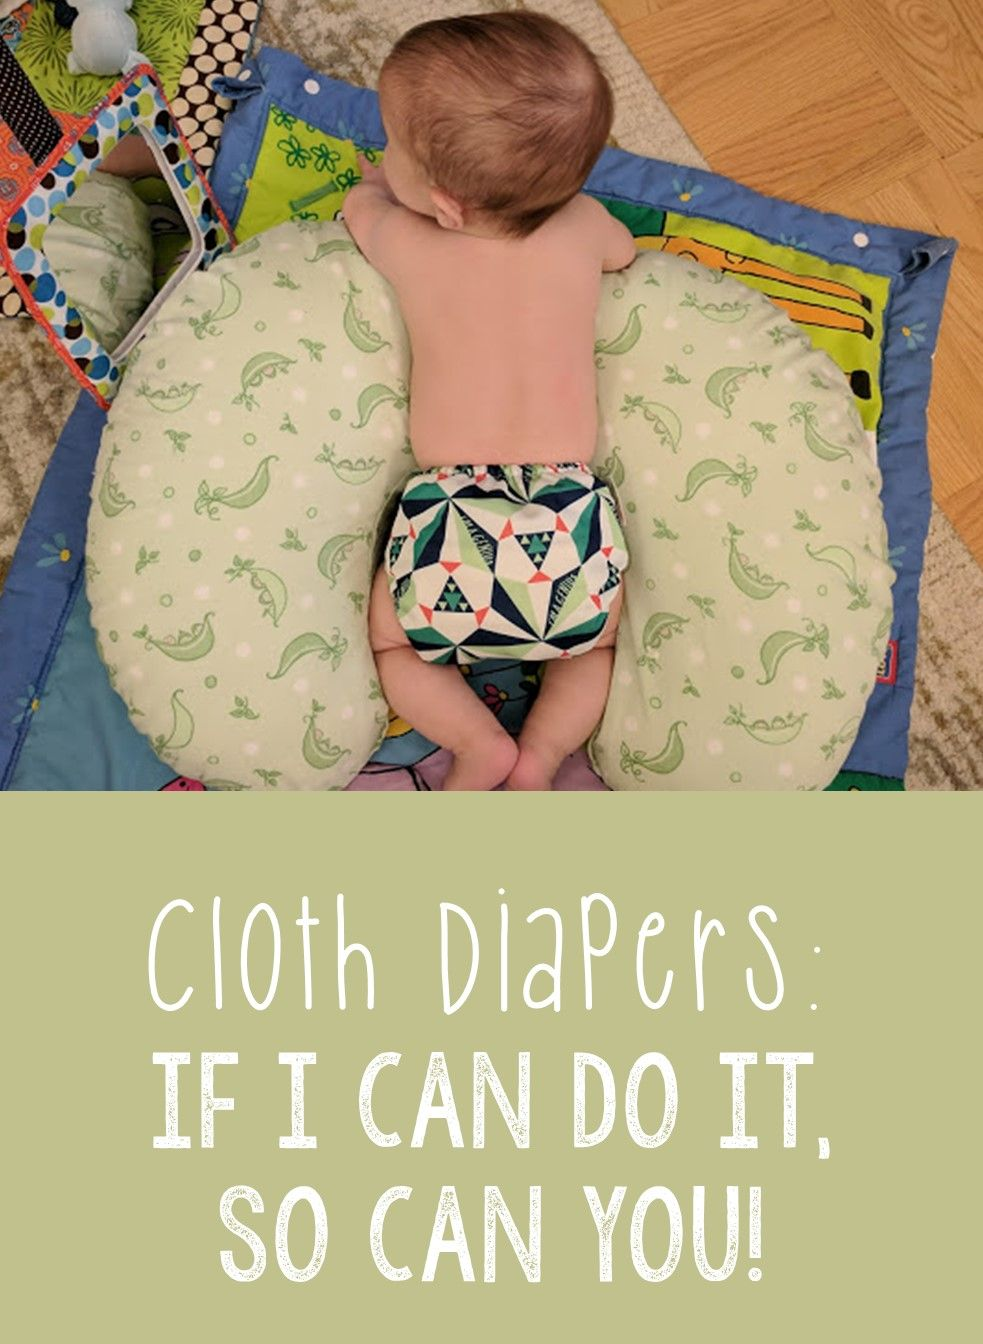 Cloth Diapers Cloth diapers, Toddler training pants